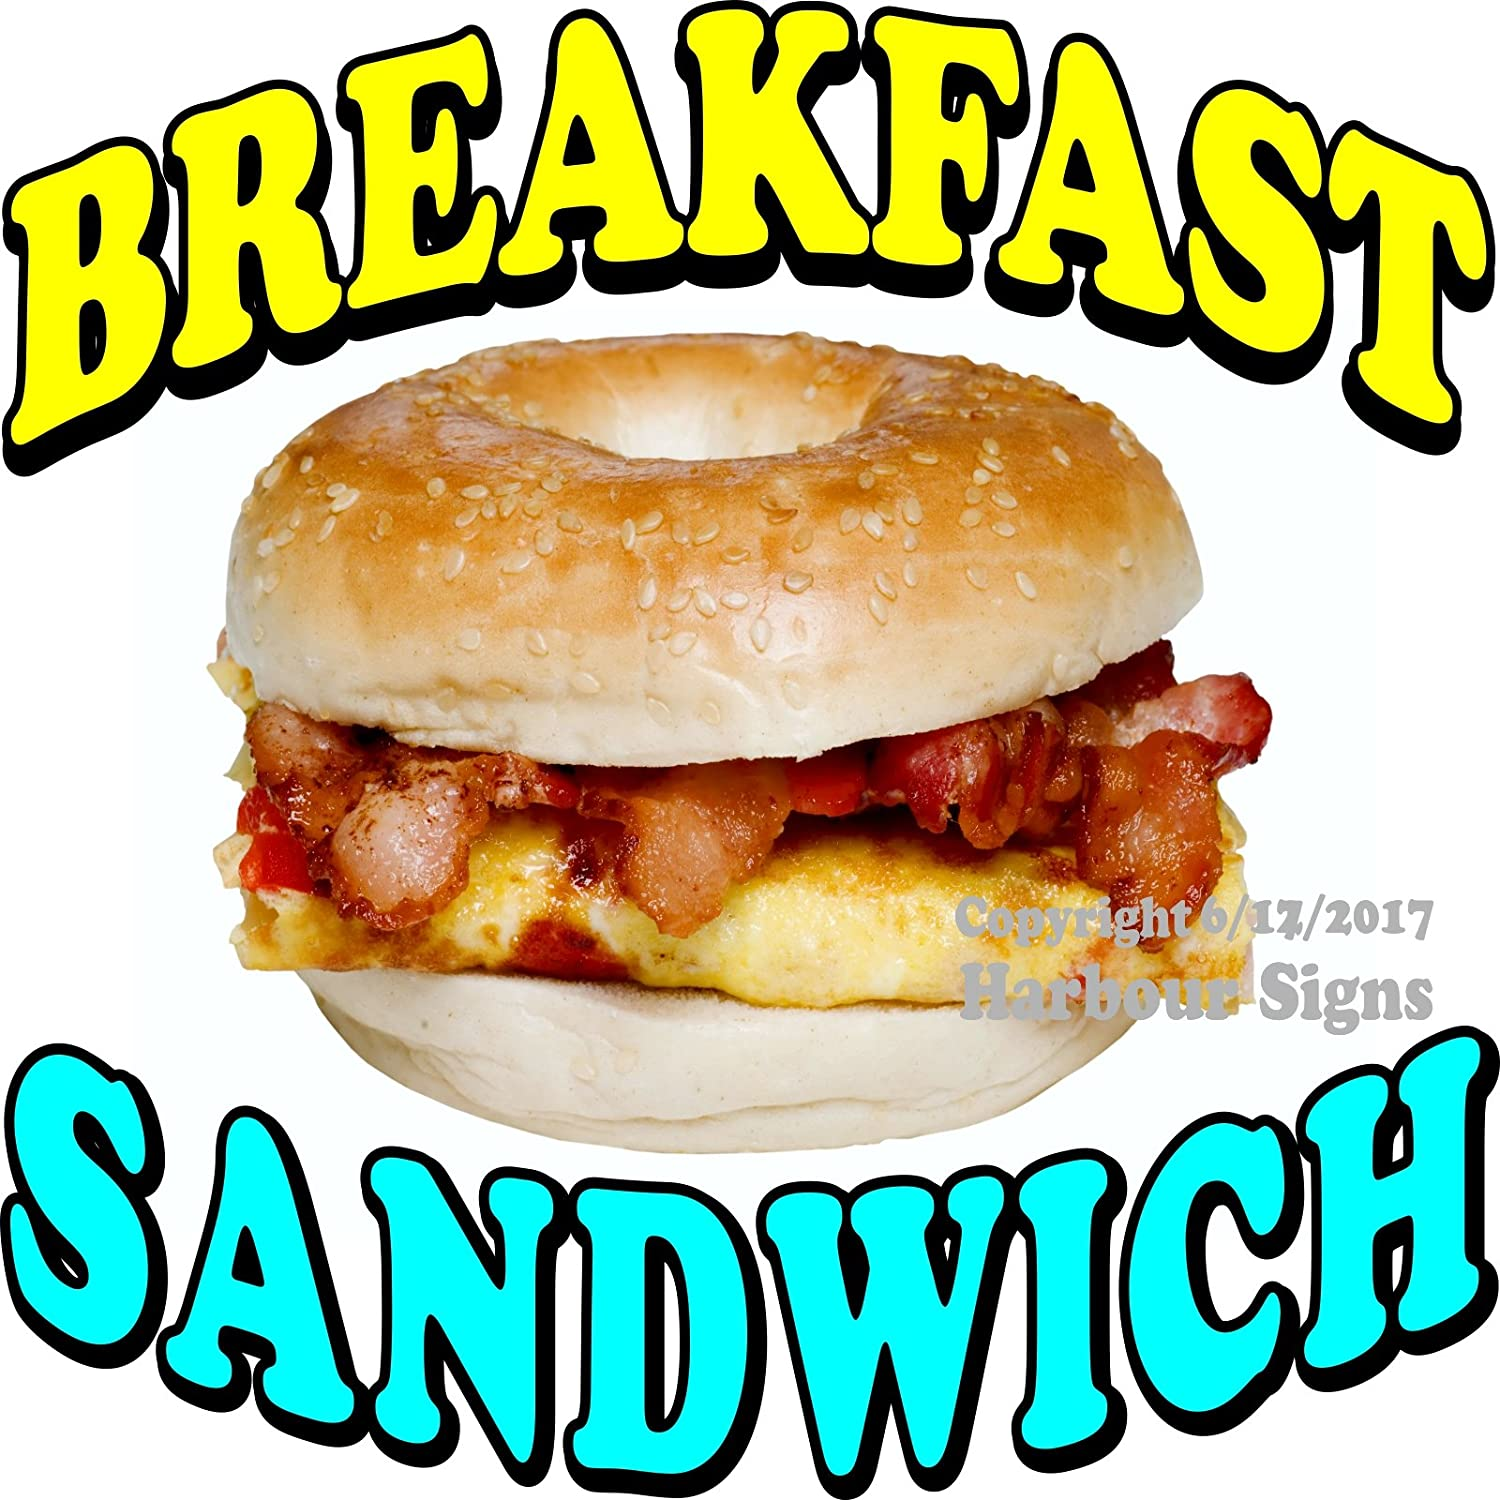 Max 61% OFF Harbour Signs Decal Breakfast High quality Sandwich Concession Bagel Food for